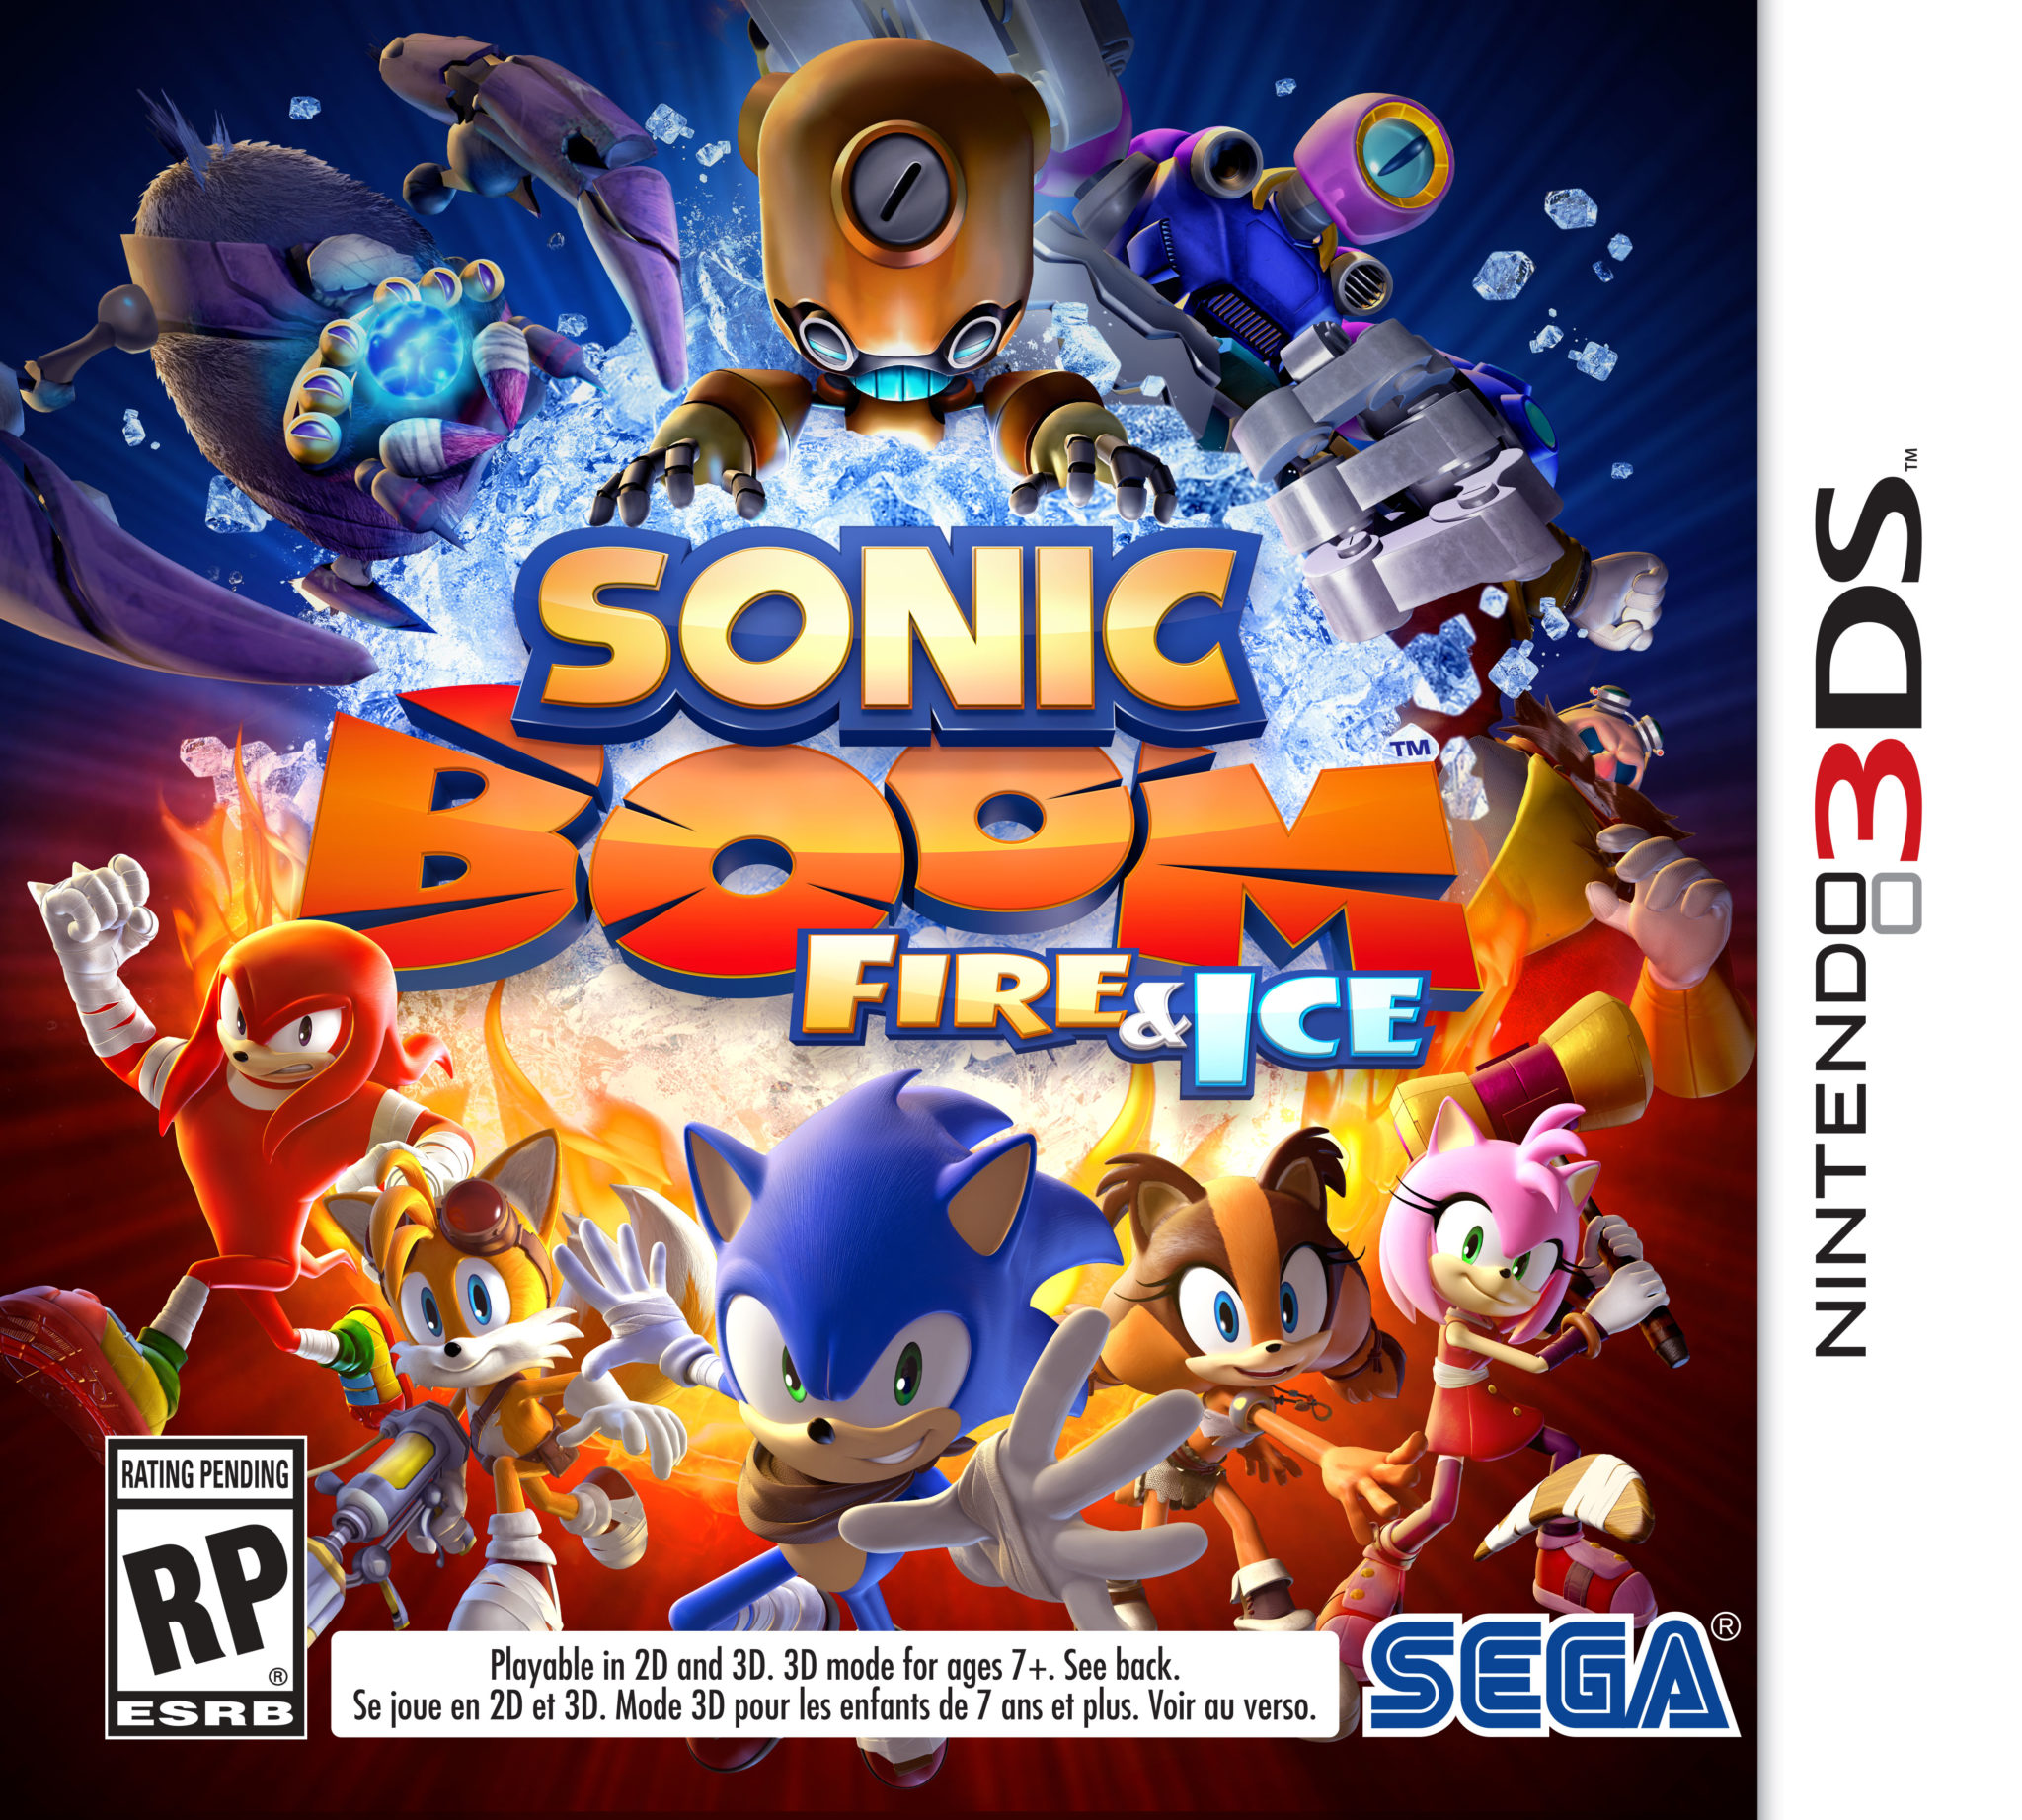 new_sonic_boom_fire_ice_trailer_box_art